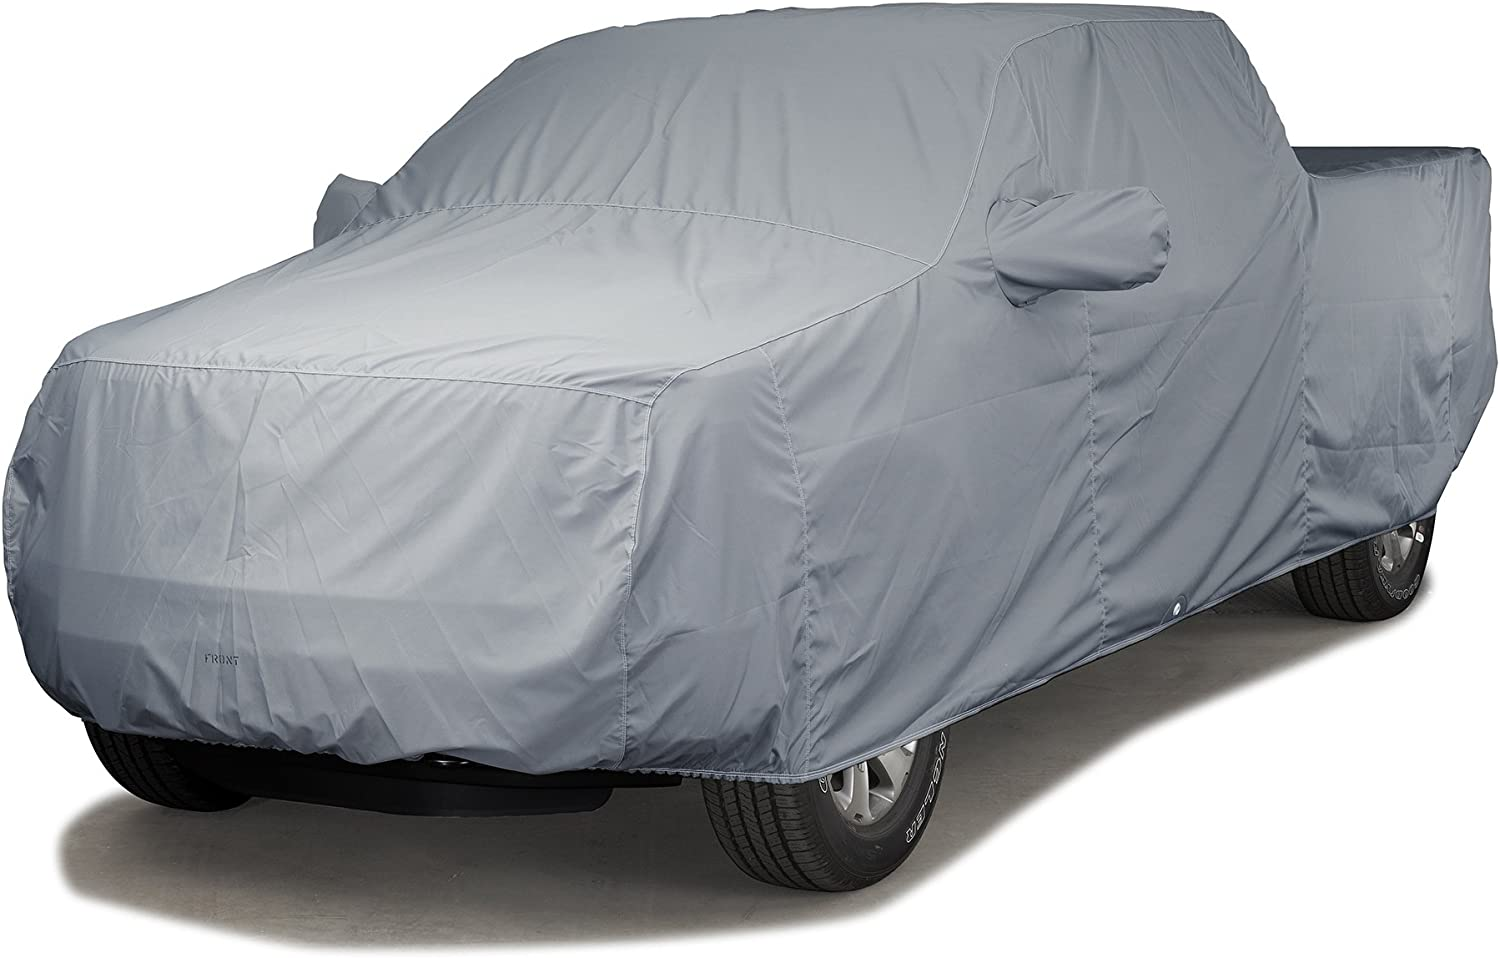 Covercraft Custom Fit Car Cover for Chevrolet Pickup Truck - WeatherShield HP Fabric (Gray)